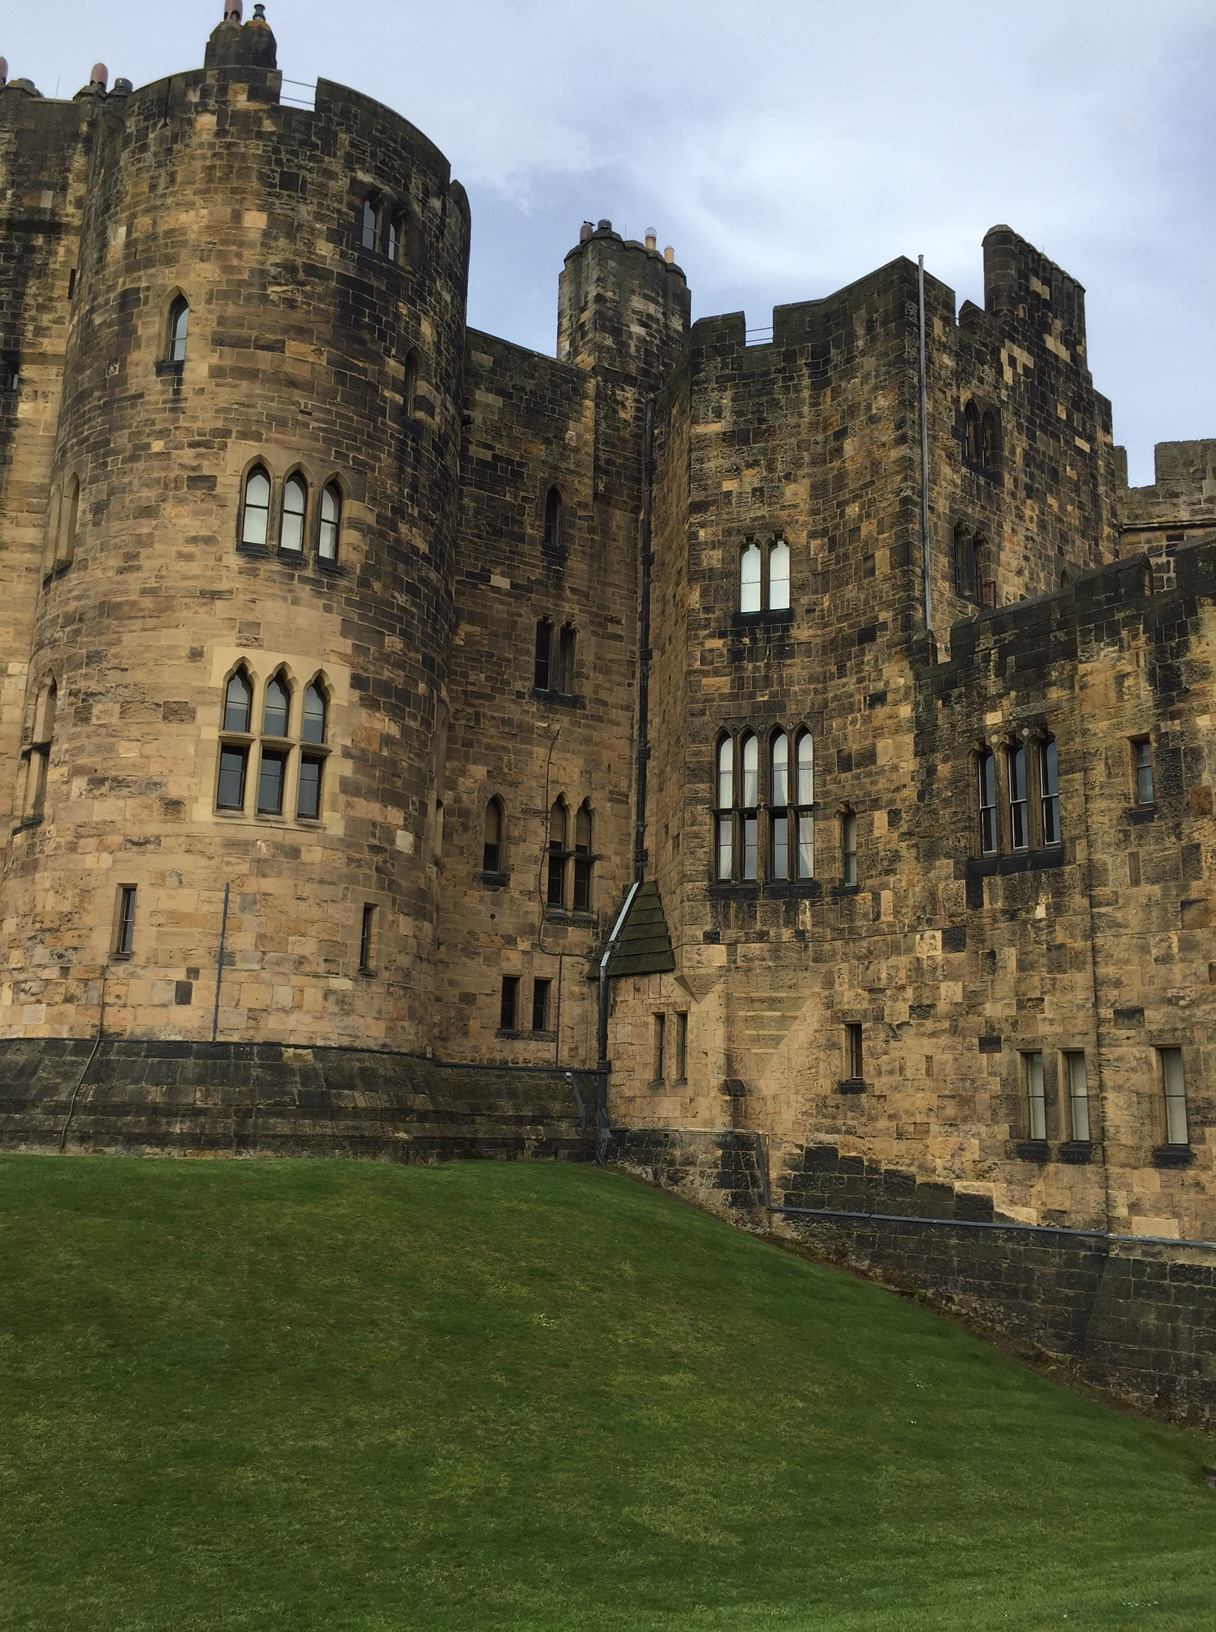 Road trip day 1: Newcastle, Alnwick and the Treehouse Restaurant ...